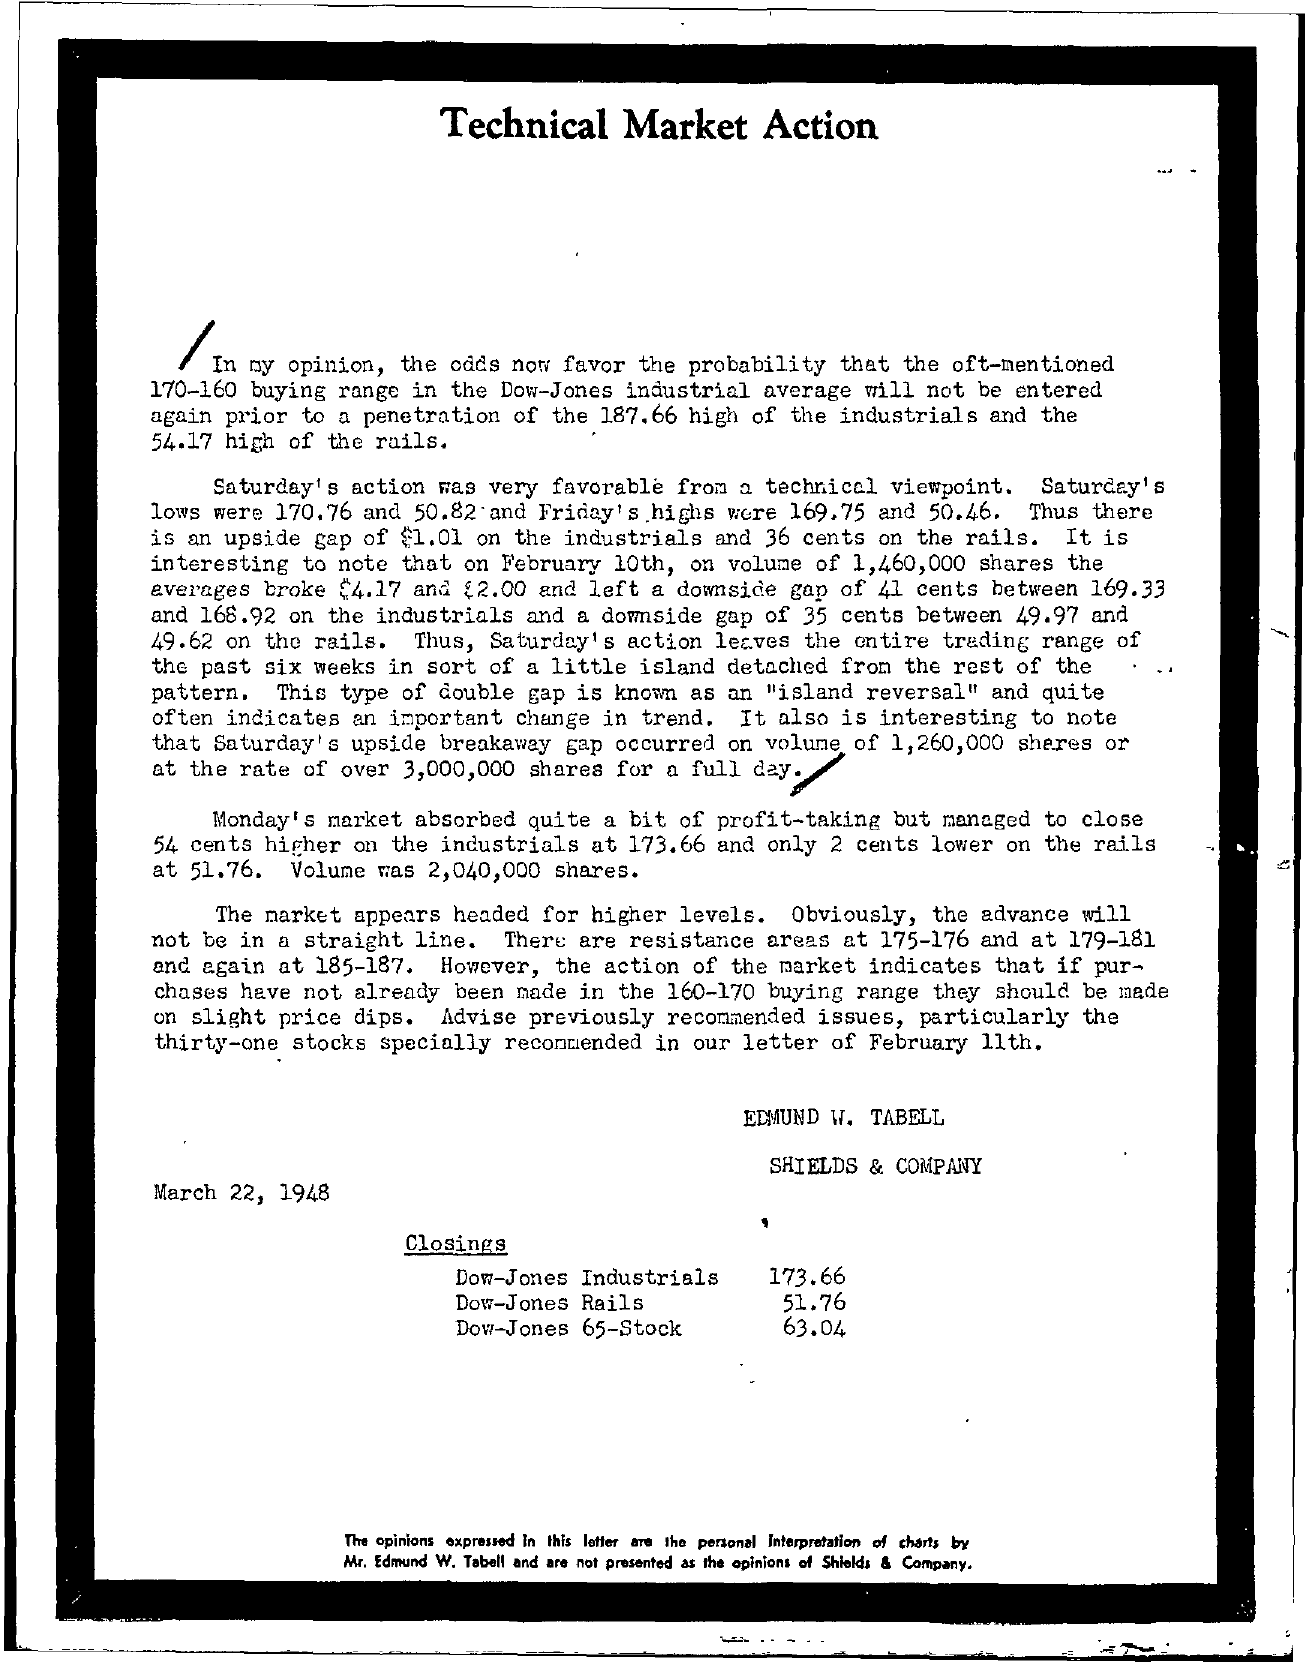 Tabell's Market Letter - March 22, 1948